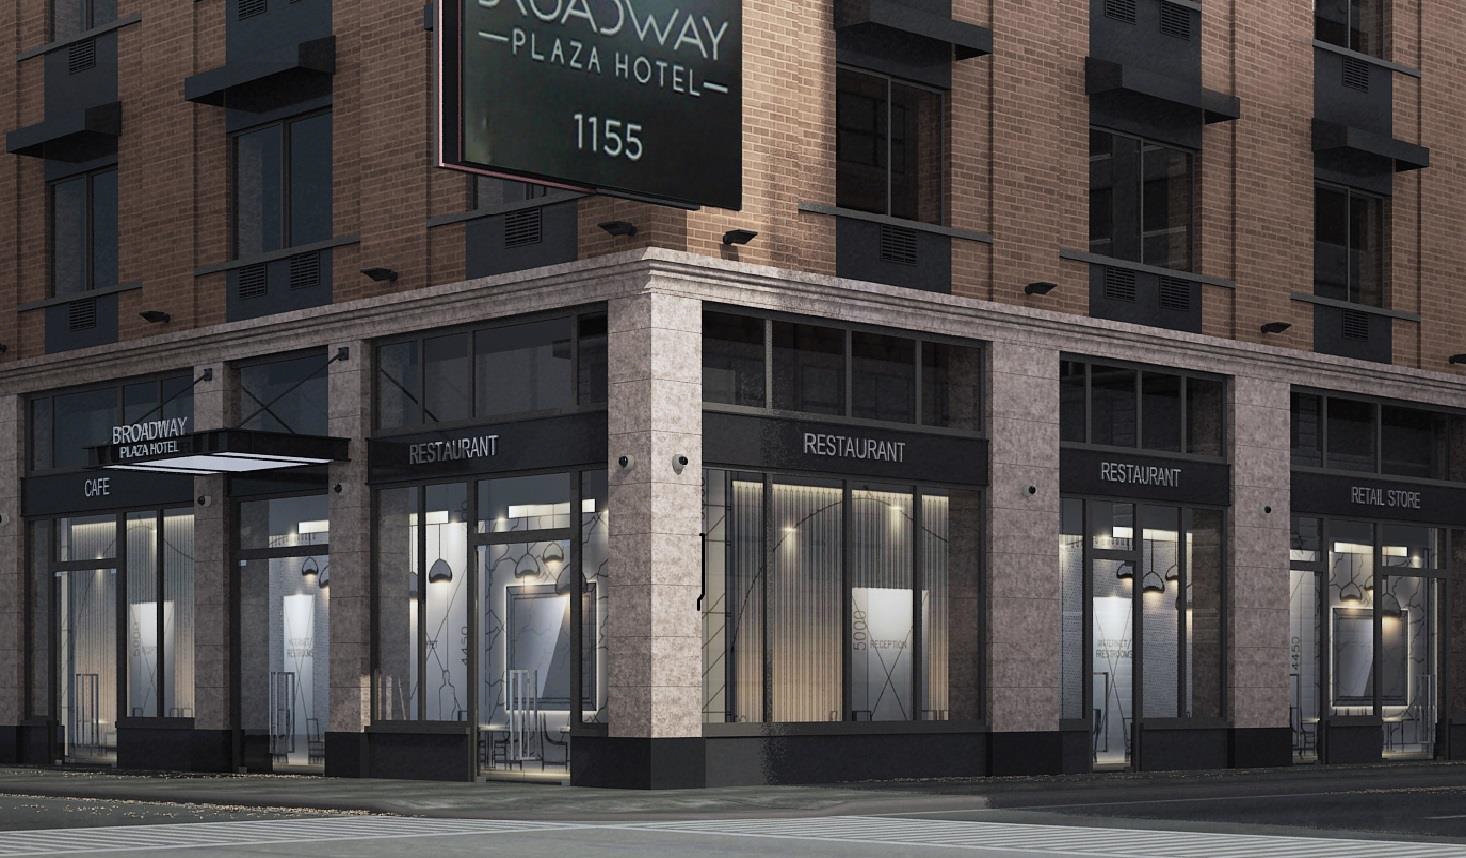 Proposal for Broadway Plaza Hotel, 1155 Broadway